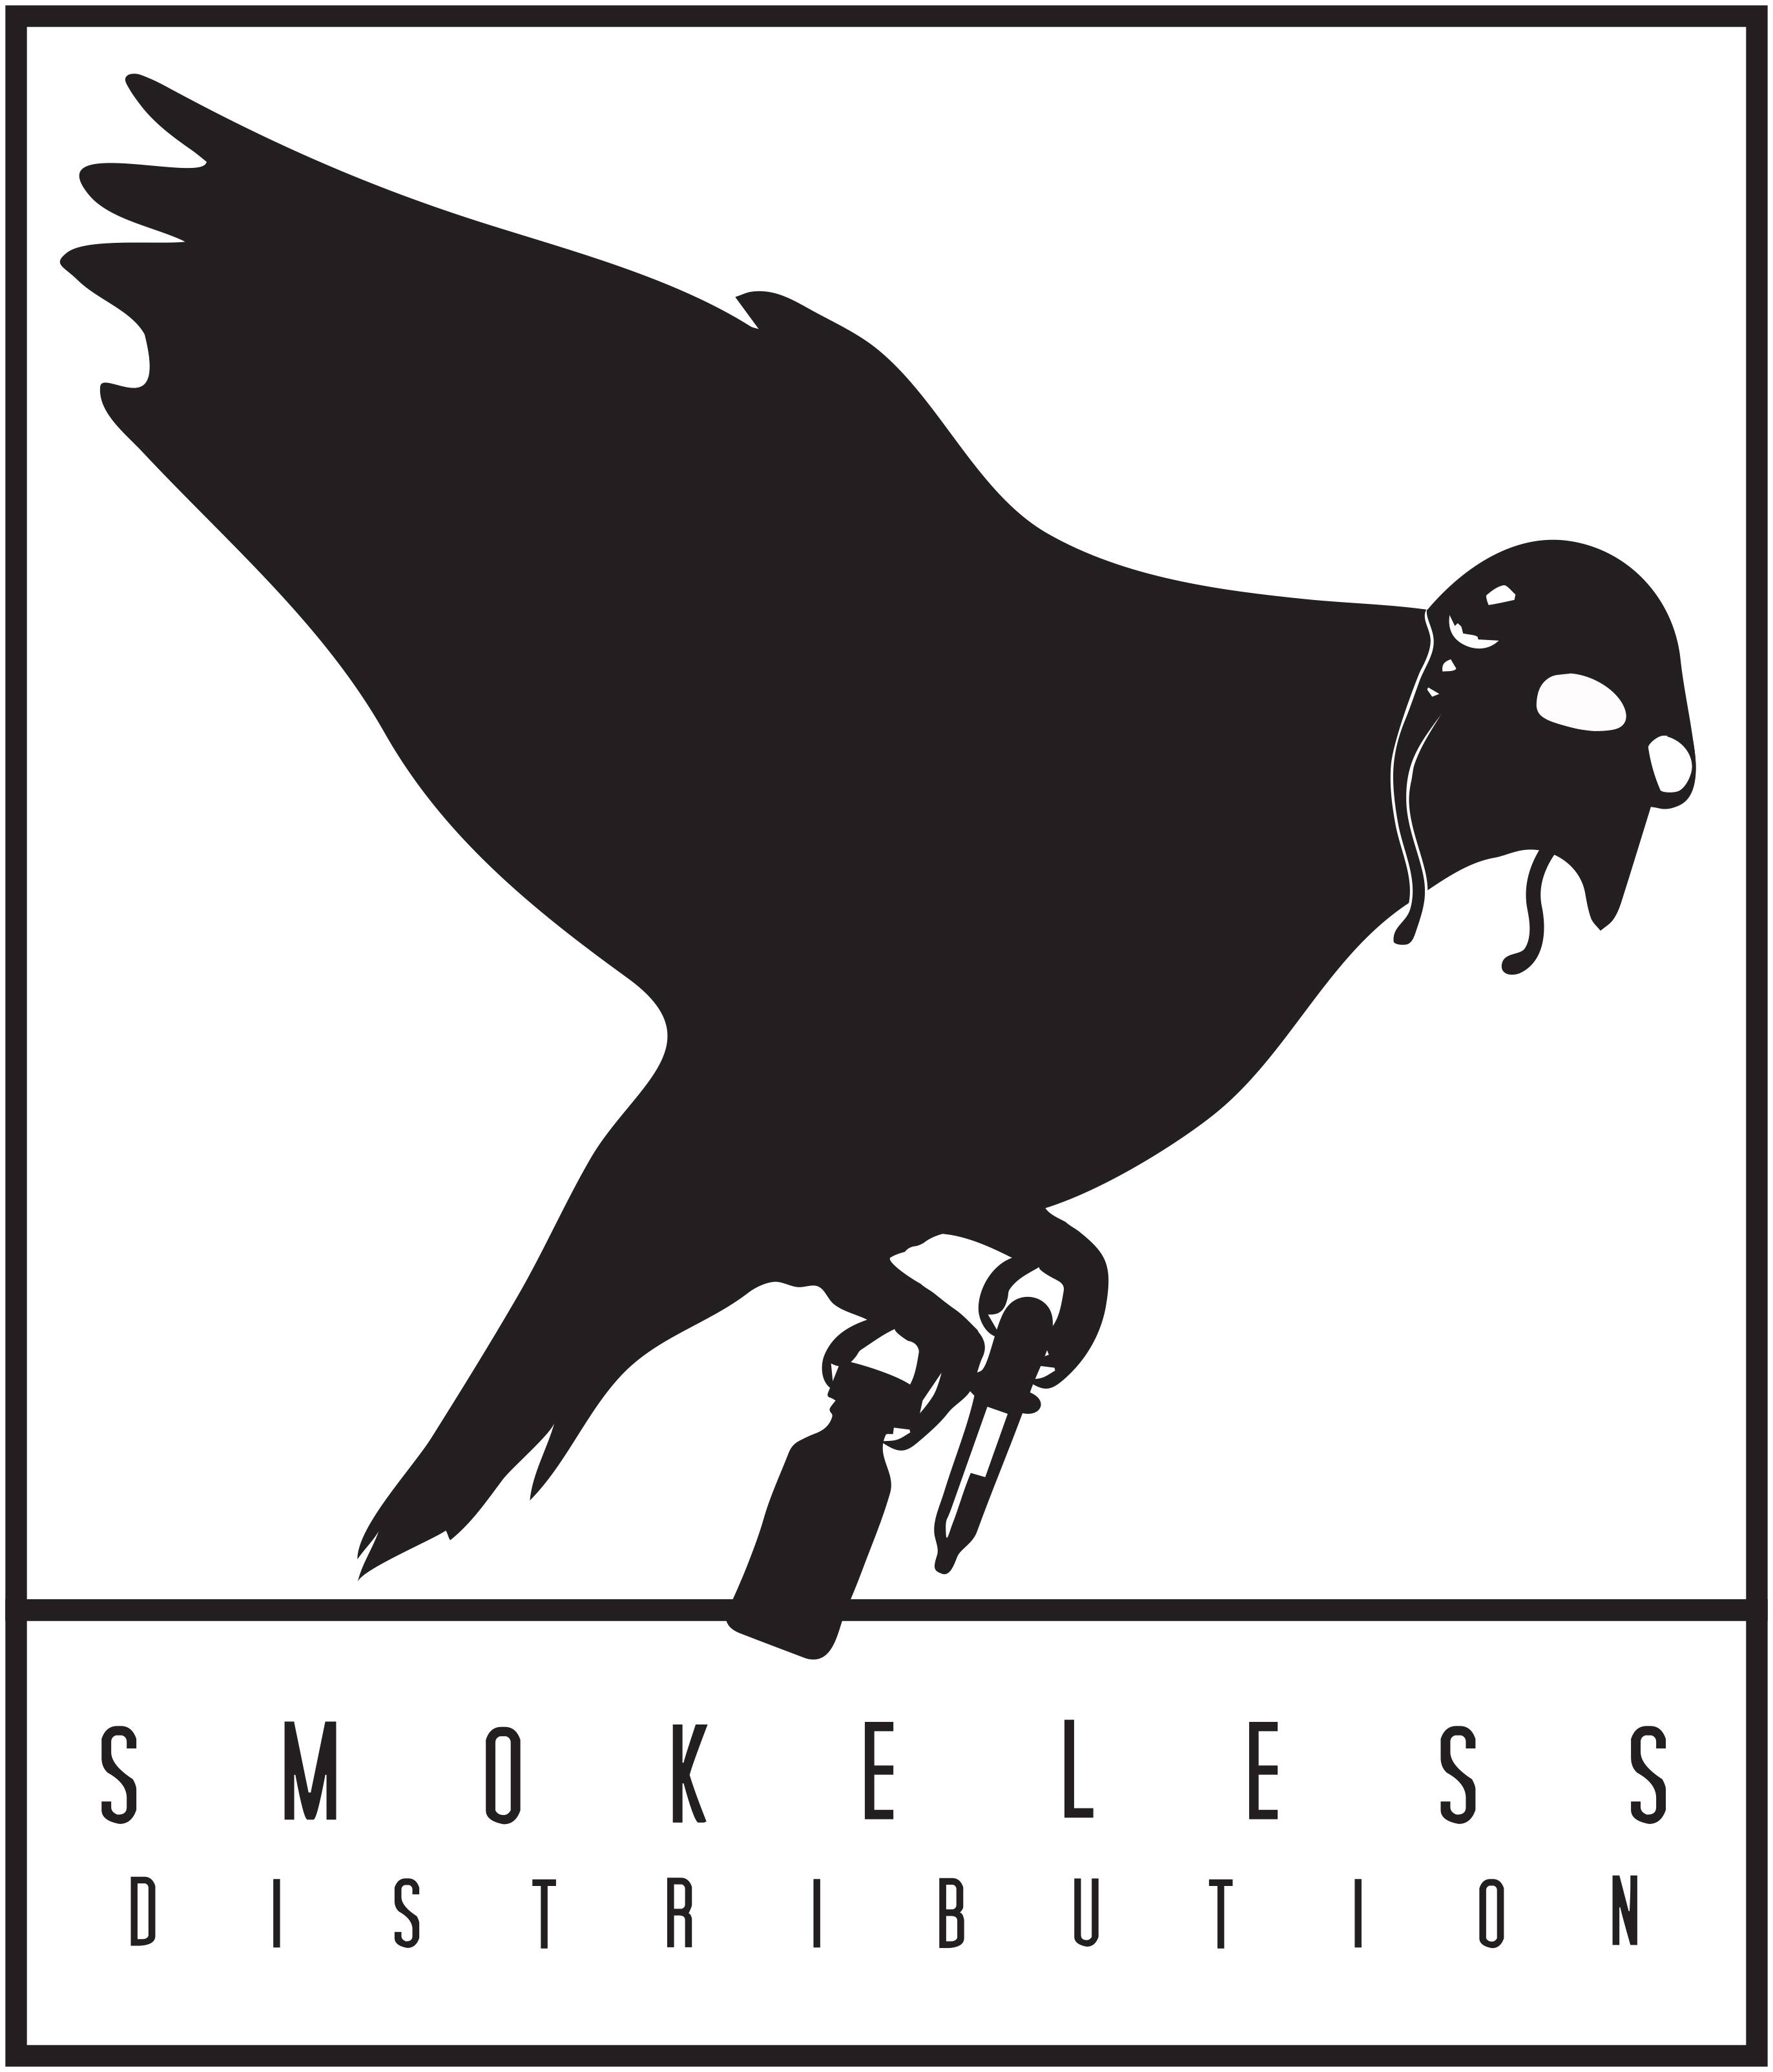 Smokeless Distribution